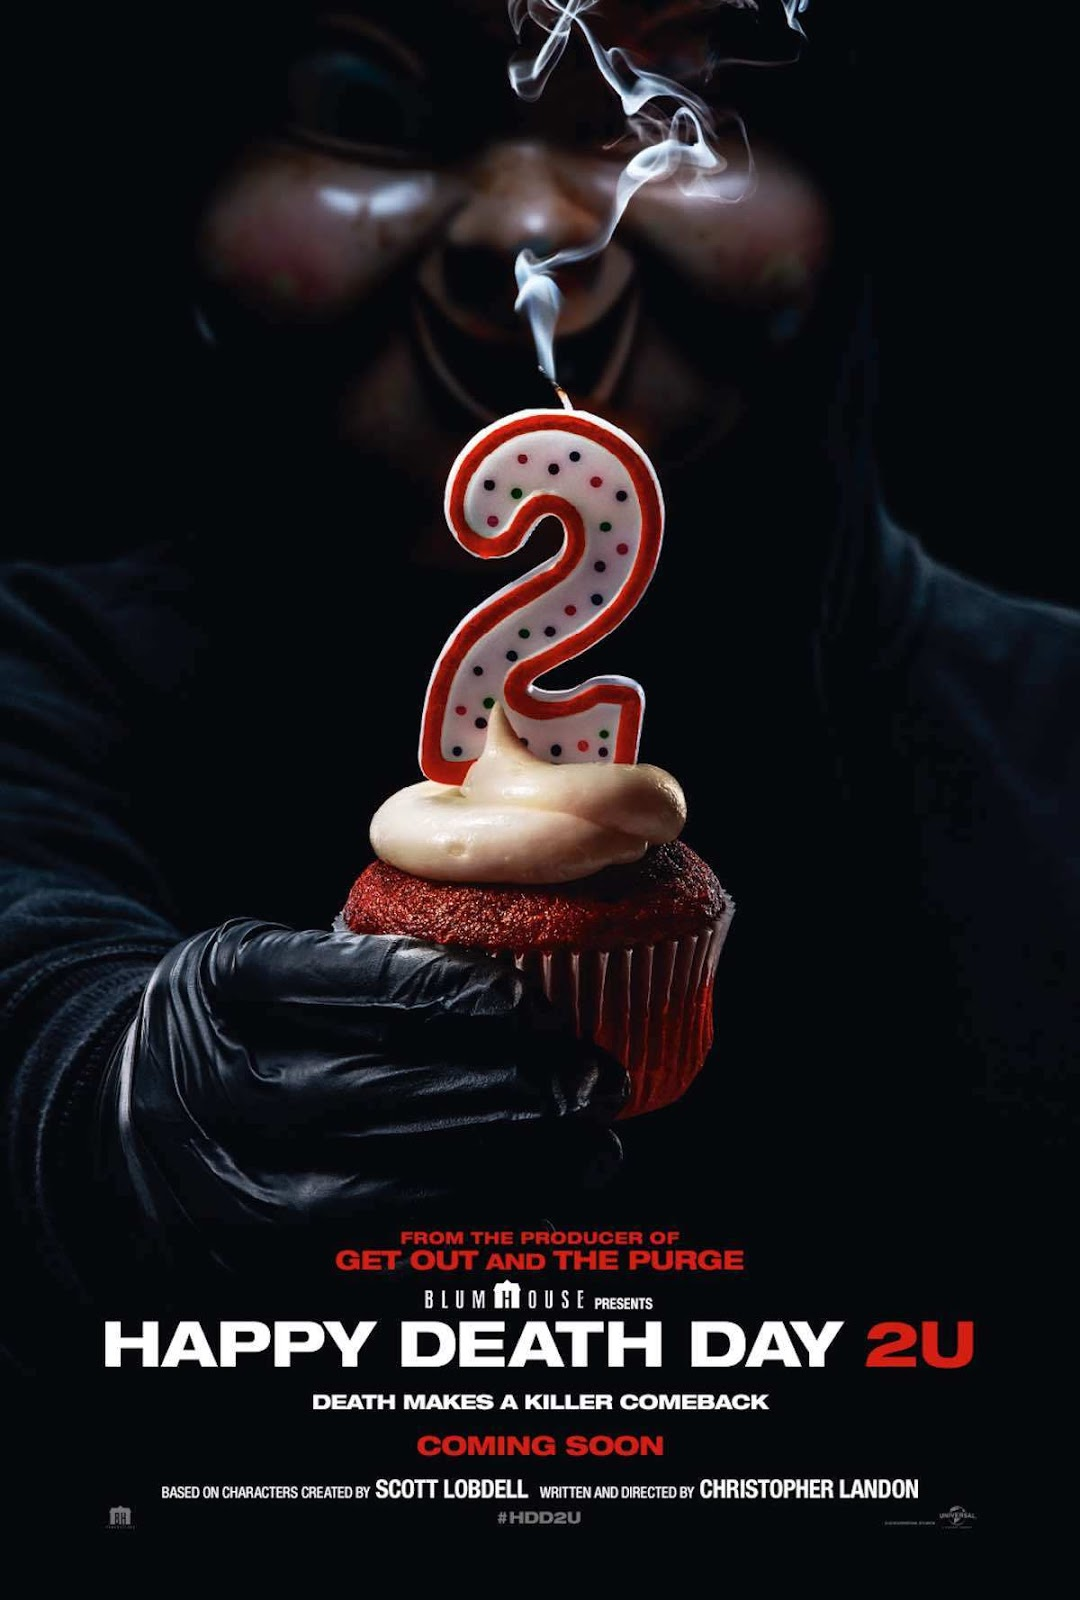 10th Circle | Horror Movies Reviews: Review: Happy Death Day 2U